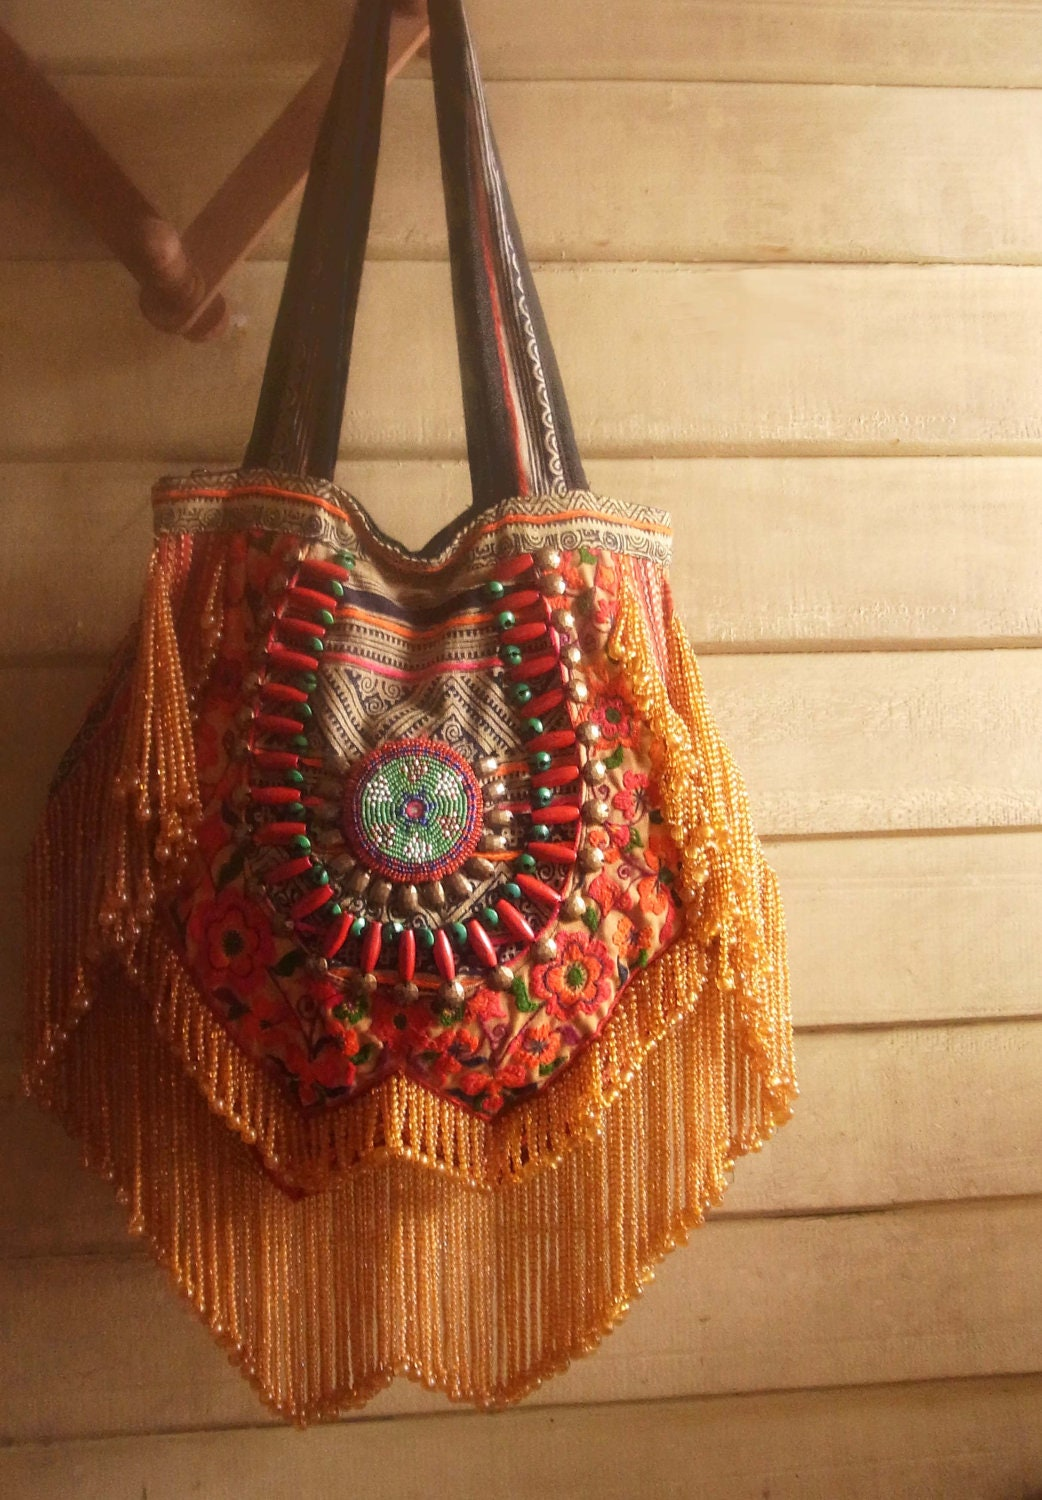 Boho Chic Ethnic Inspiration In Interior Design Projects: Fringe Purse, Embroidery And